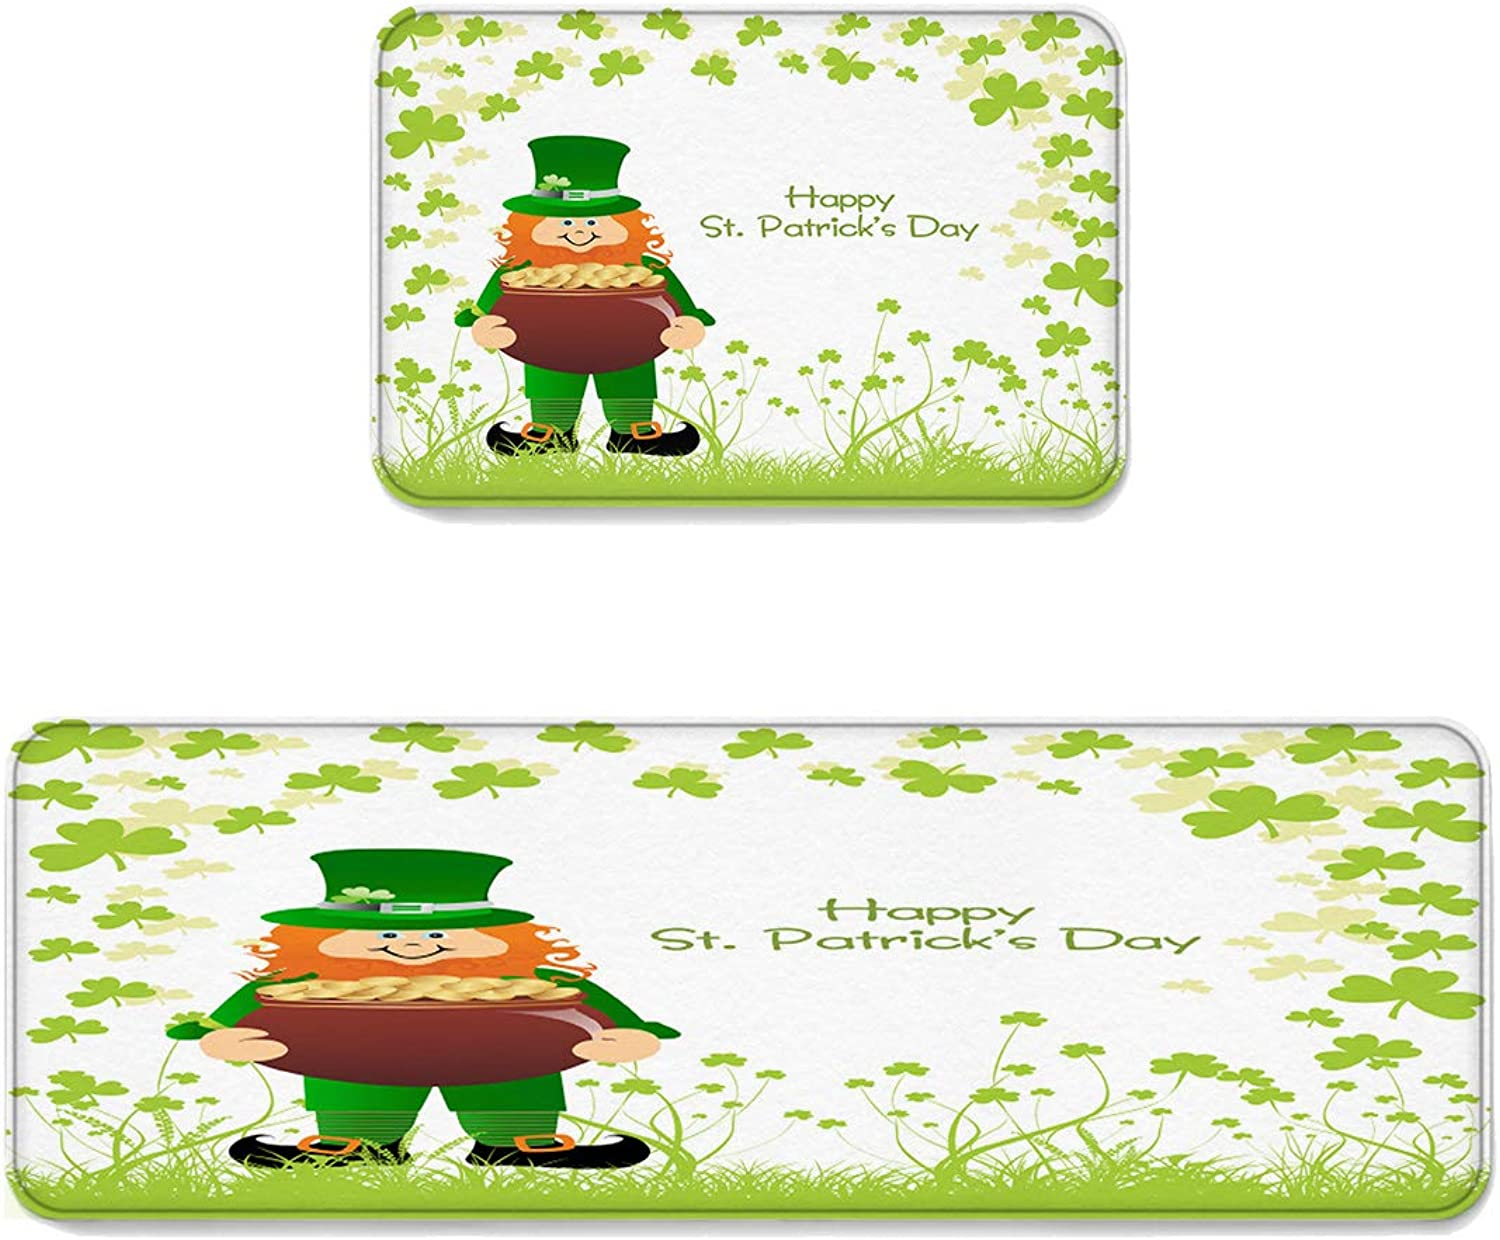 Kitchen Rug Sets 2 Piece Floor Mats Non-Slip Rubber Backing Area Rugs Leprechaun Green Shamrocks Happy St. Patrick's Day Doormat Washable Carpet Inside Door Mat Pad Sets (19.7  x 31.5 +19.7  x 47.2 )